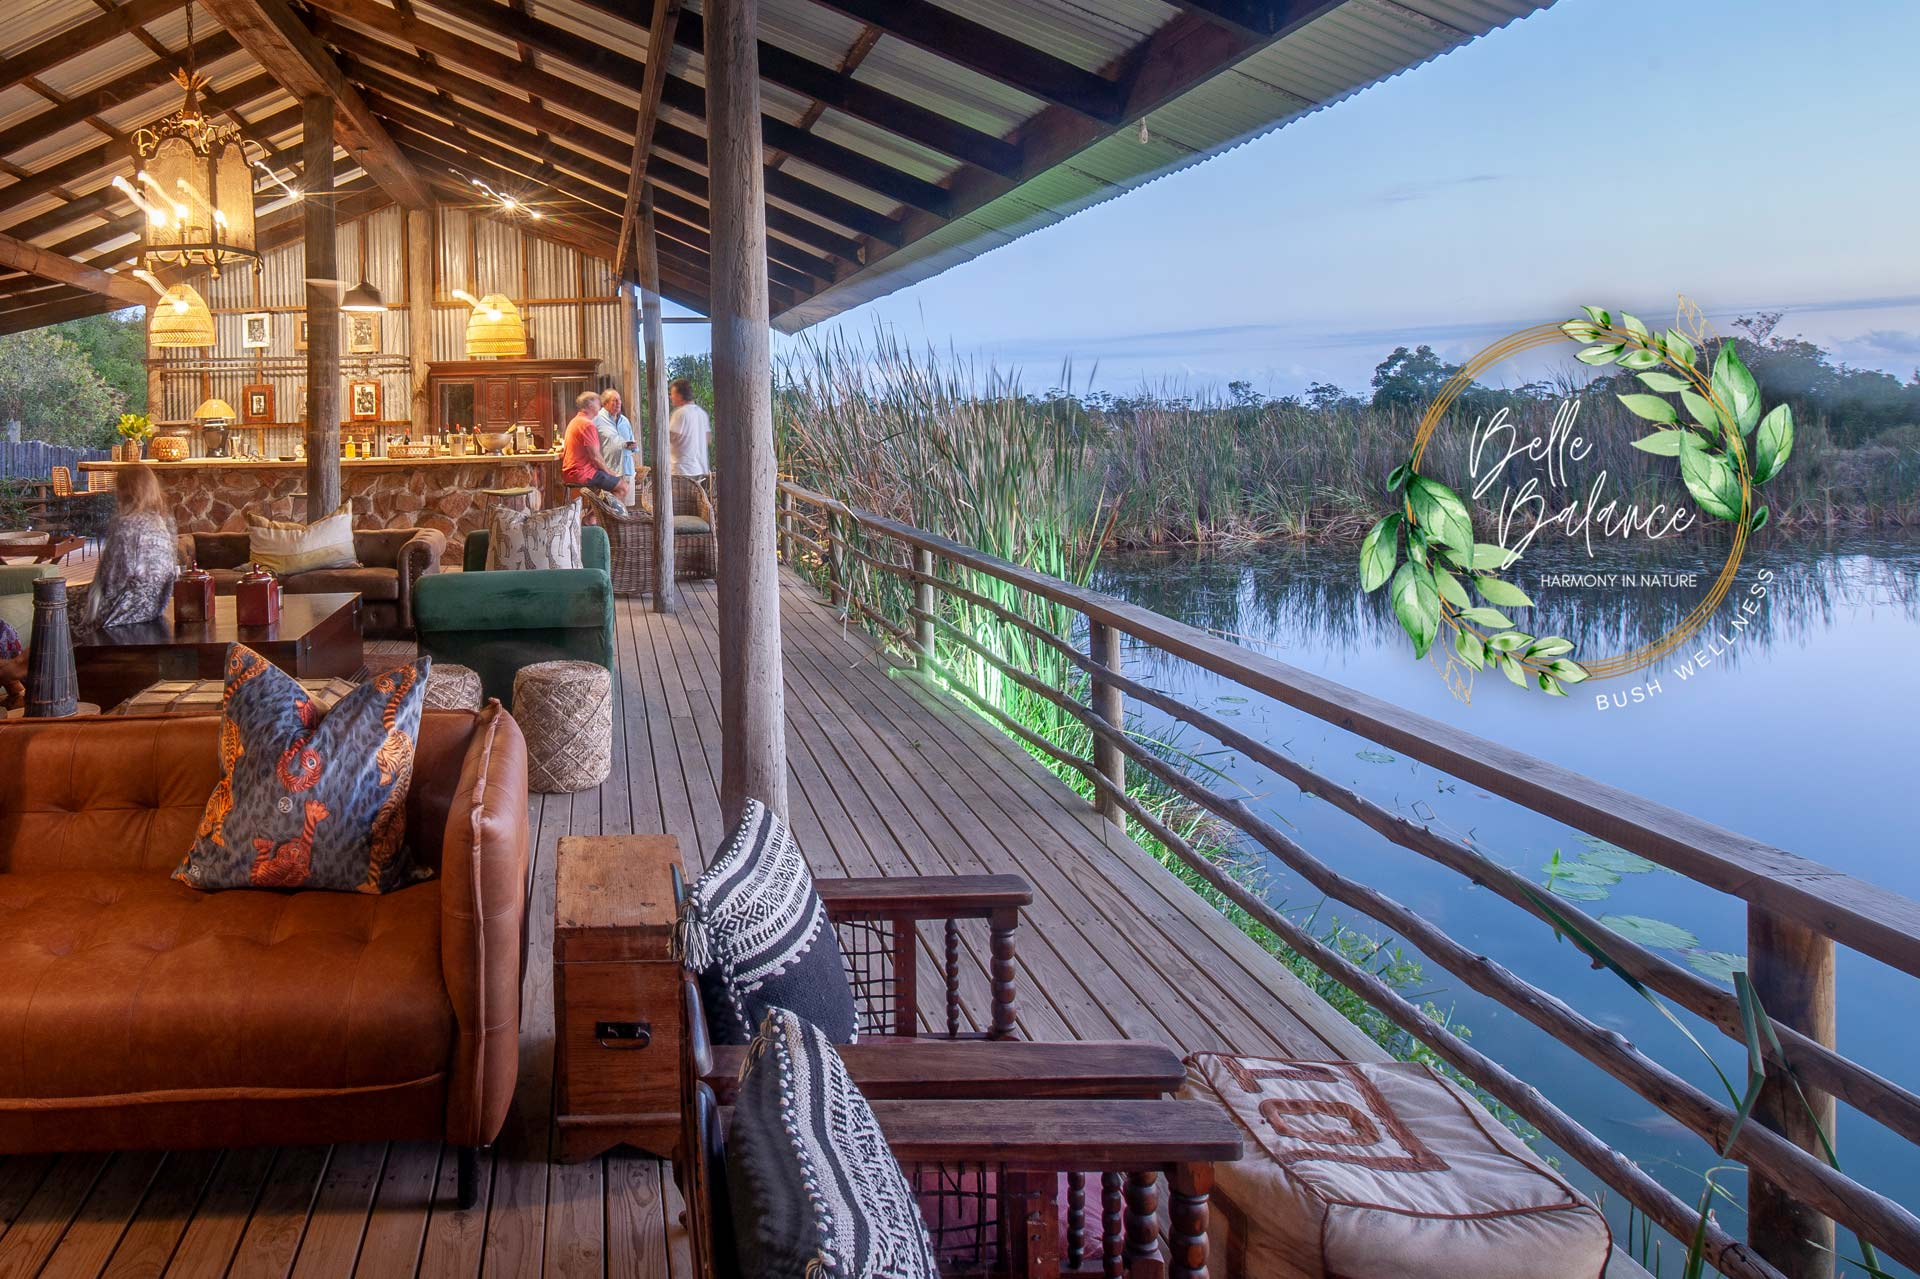 Belle Balance Plettenberg Bay is a one of a kind hide out in the bush